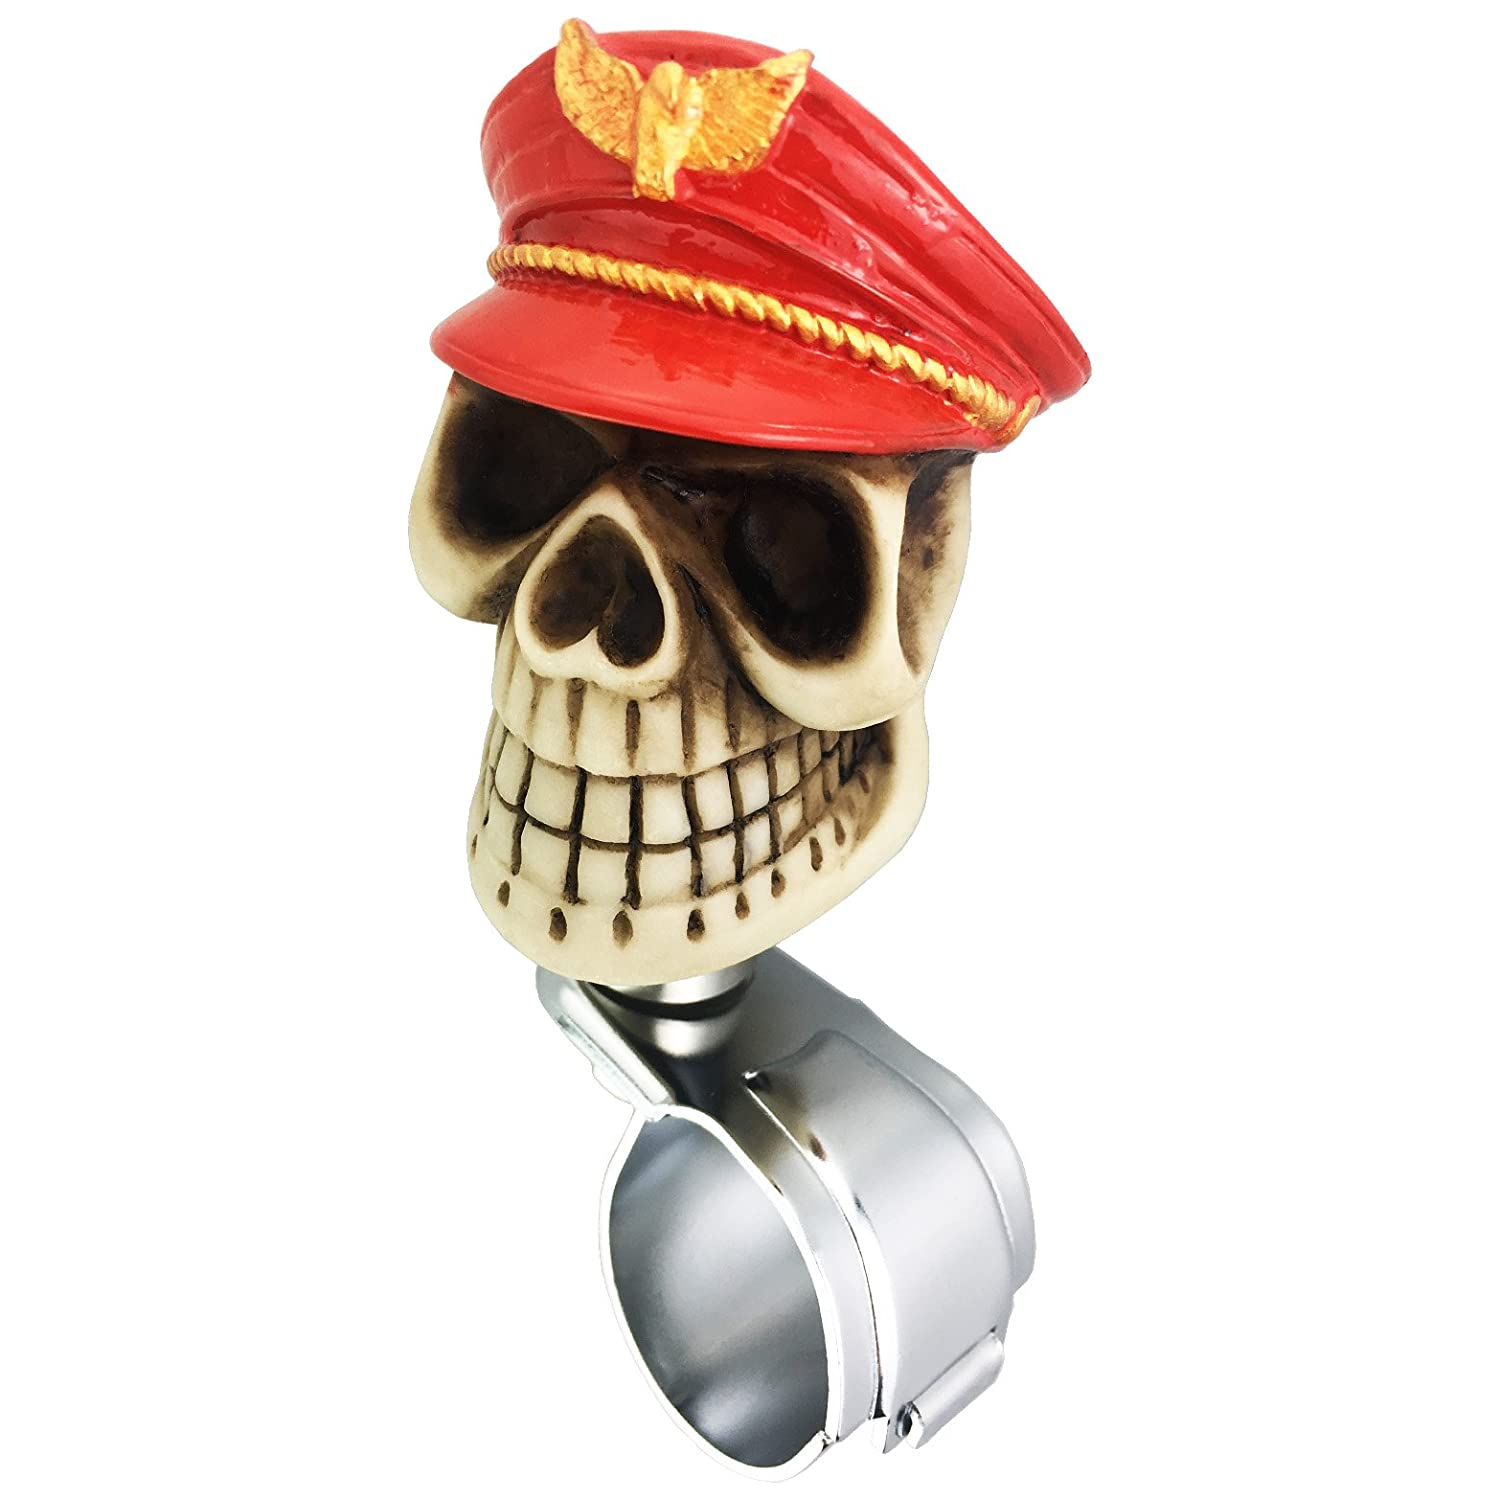 Cyan LUNSOM Cool Power Handle Spinner Skull Steering Wheel Knob for Car Accessory Universal Red Spinner Wheel